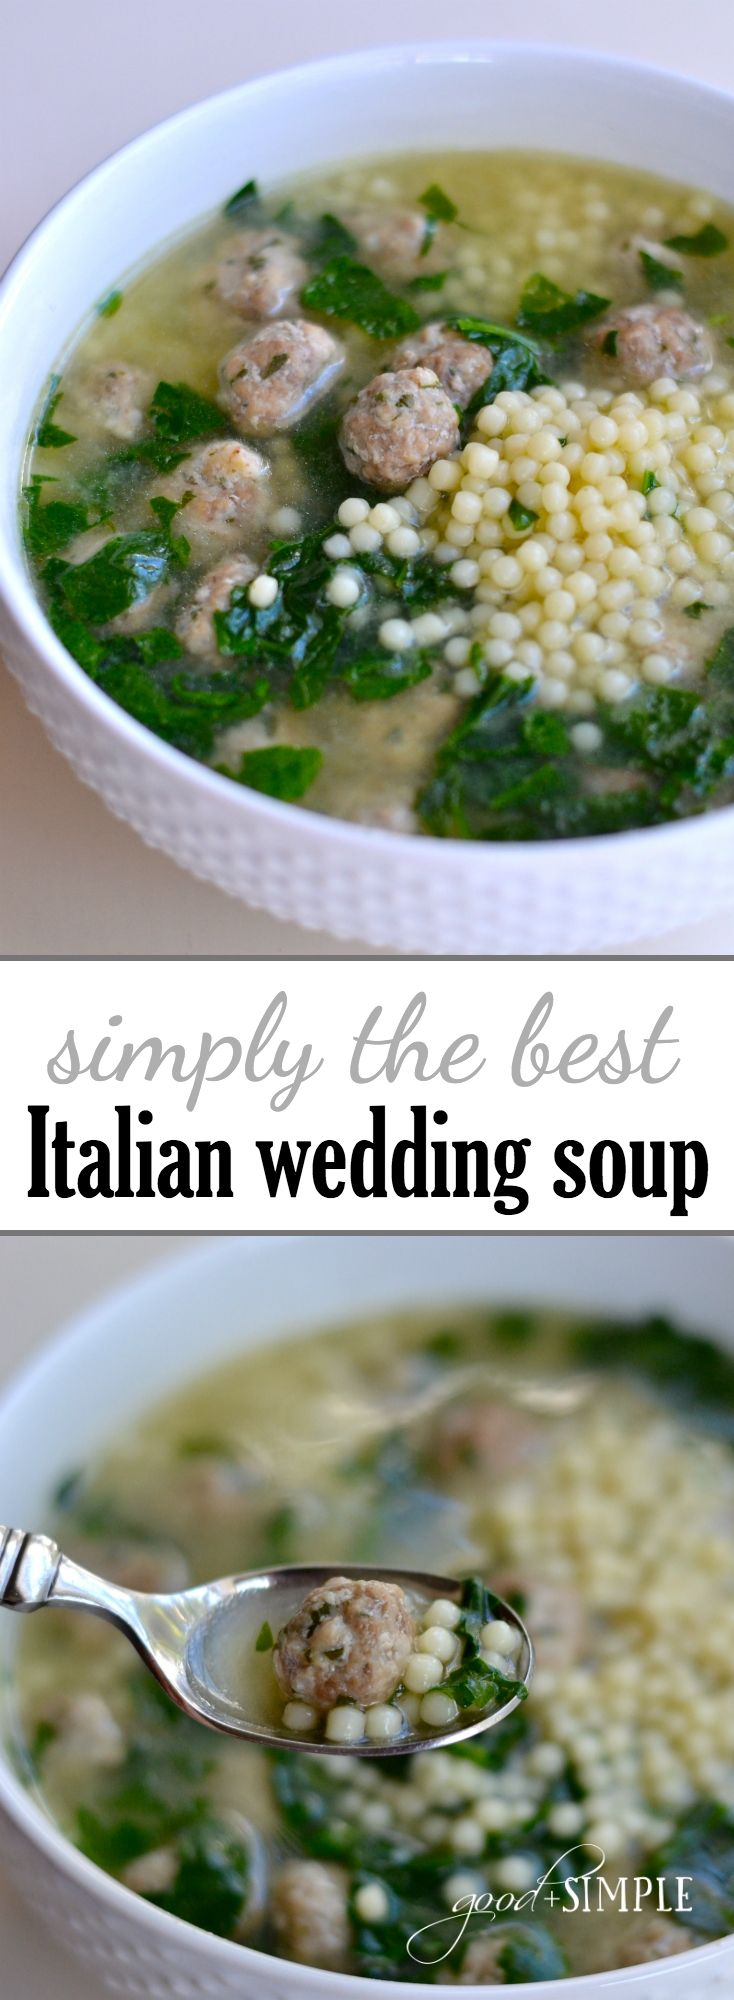 I combined elements from several different Italian Wedding Soup recipes to create our all-time favorite version! #weightlosstips